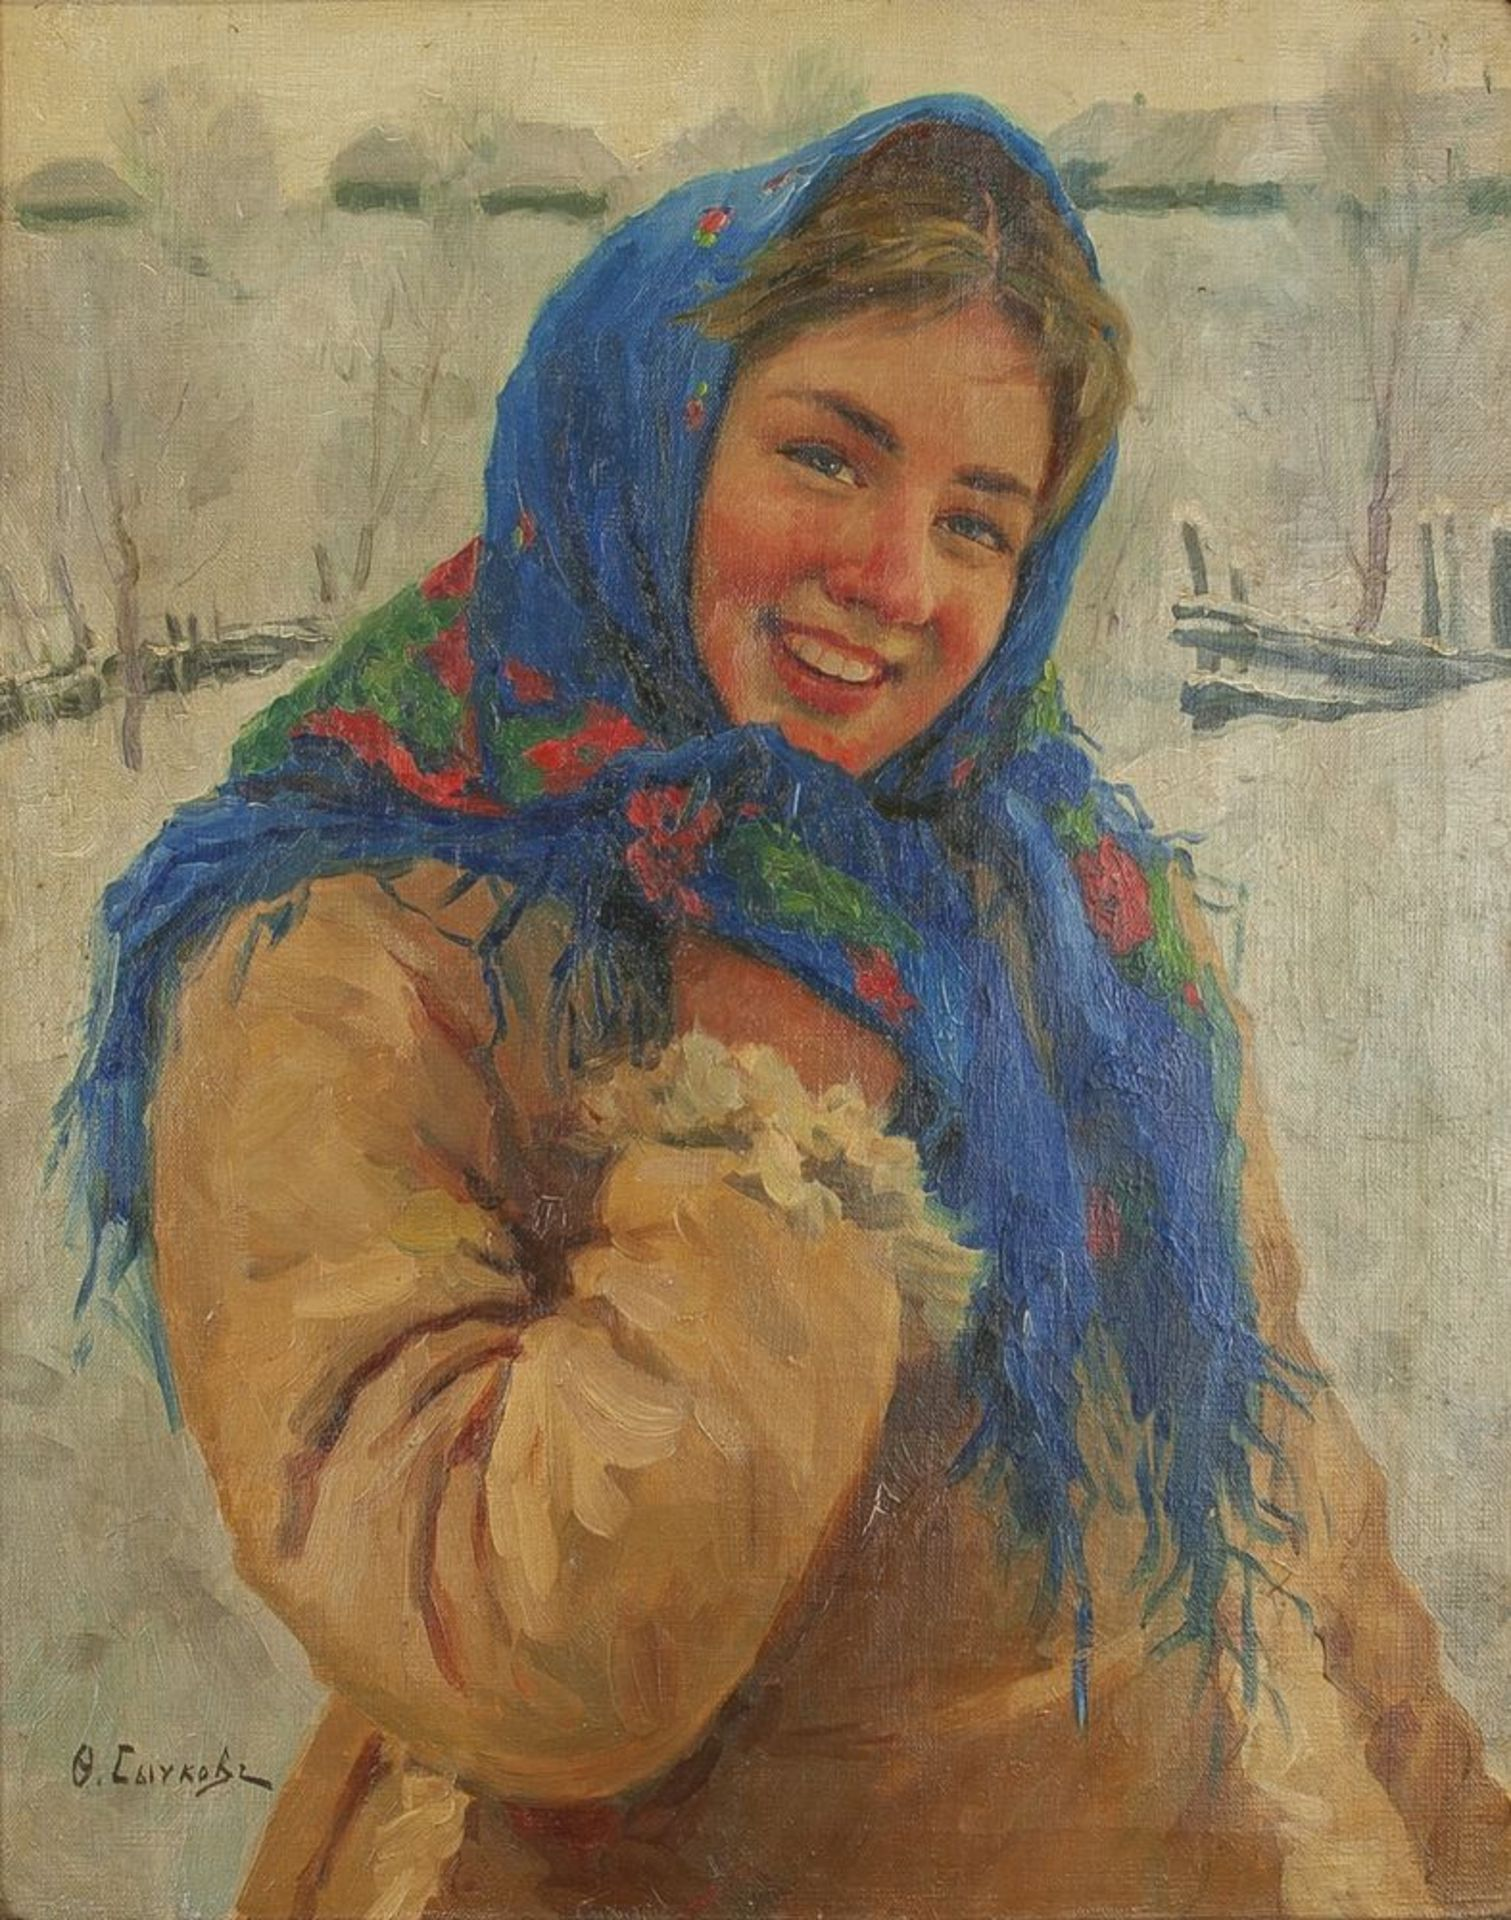 Los 5 - Fedot Vasilievich Sychkov (1870-1958) - Girl With Scarf Signed in Cyrillic 'Ф. [...]